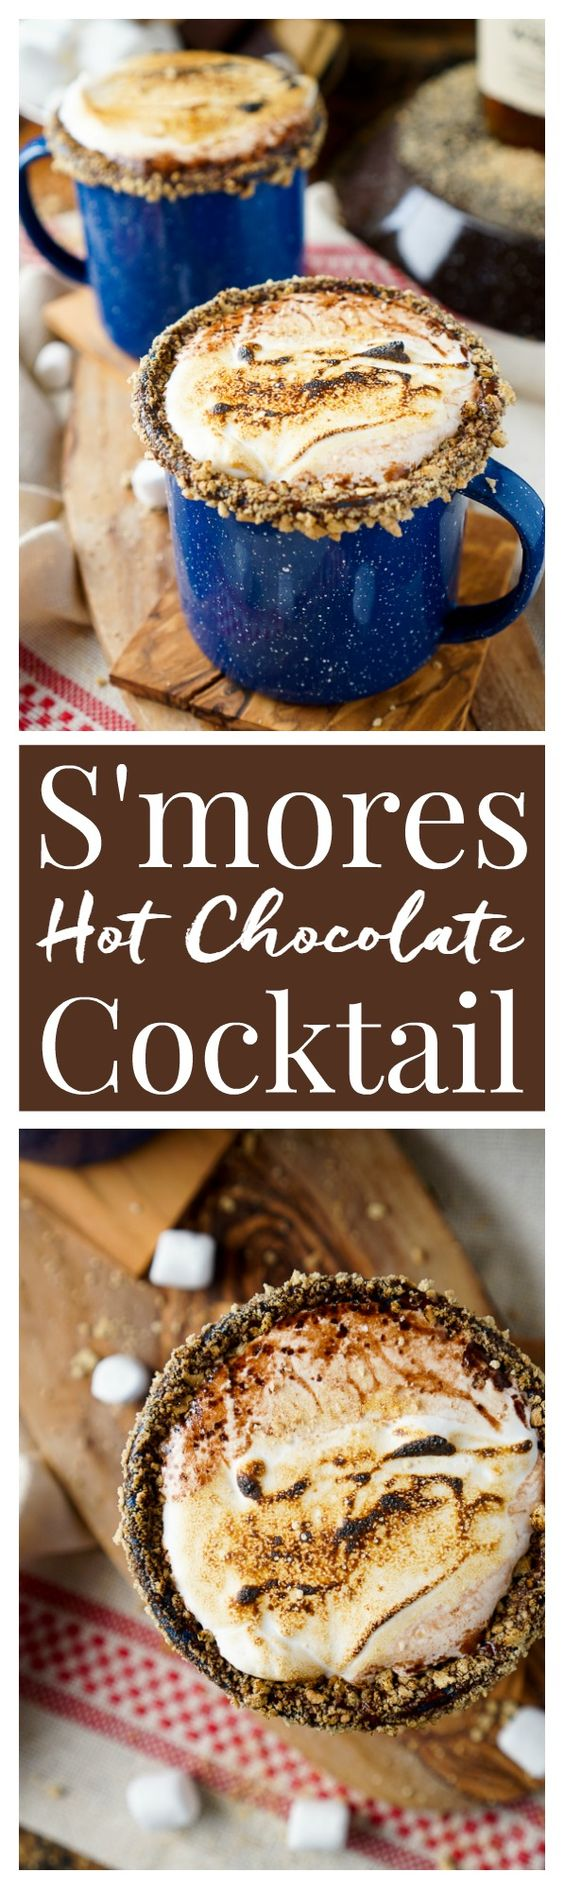 This Campfire S'mores Hot Chocolate Cocktail is laced with whiskey and honey for a smooth and cozy drink!